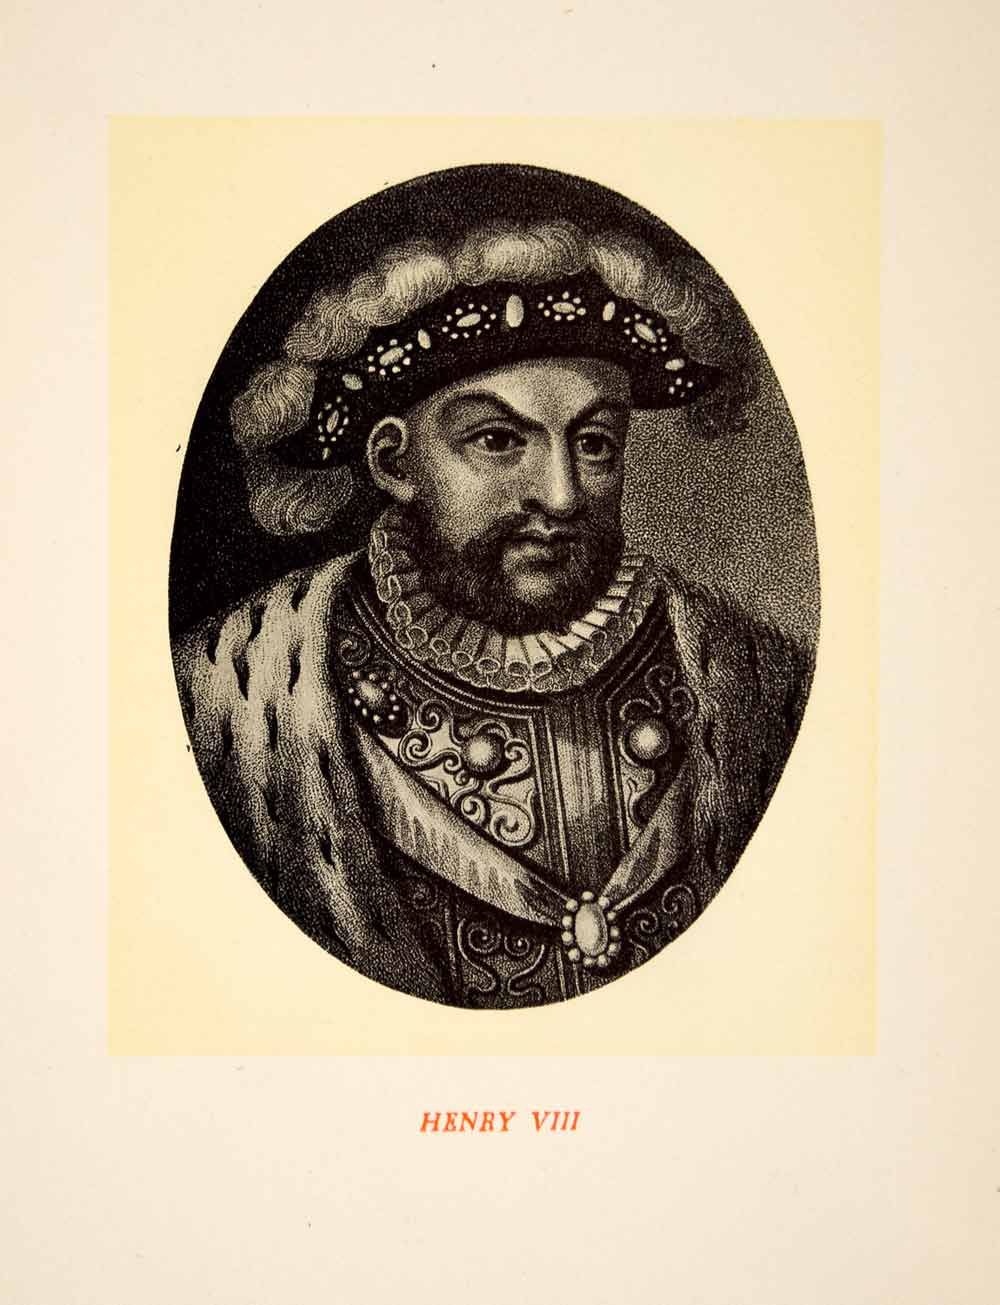 1900 Lithograph Art King Henry VIII England Portrait Royalty Tudor Dynasty SRP1